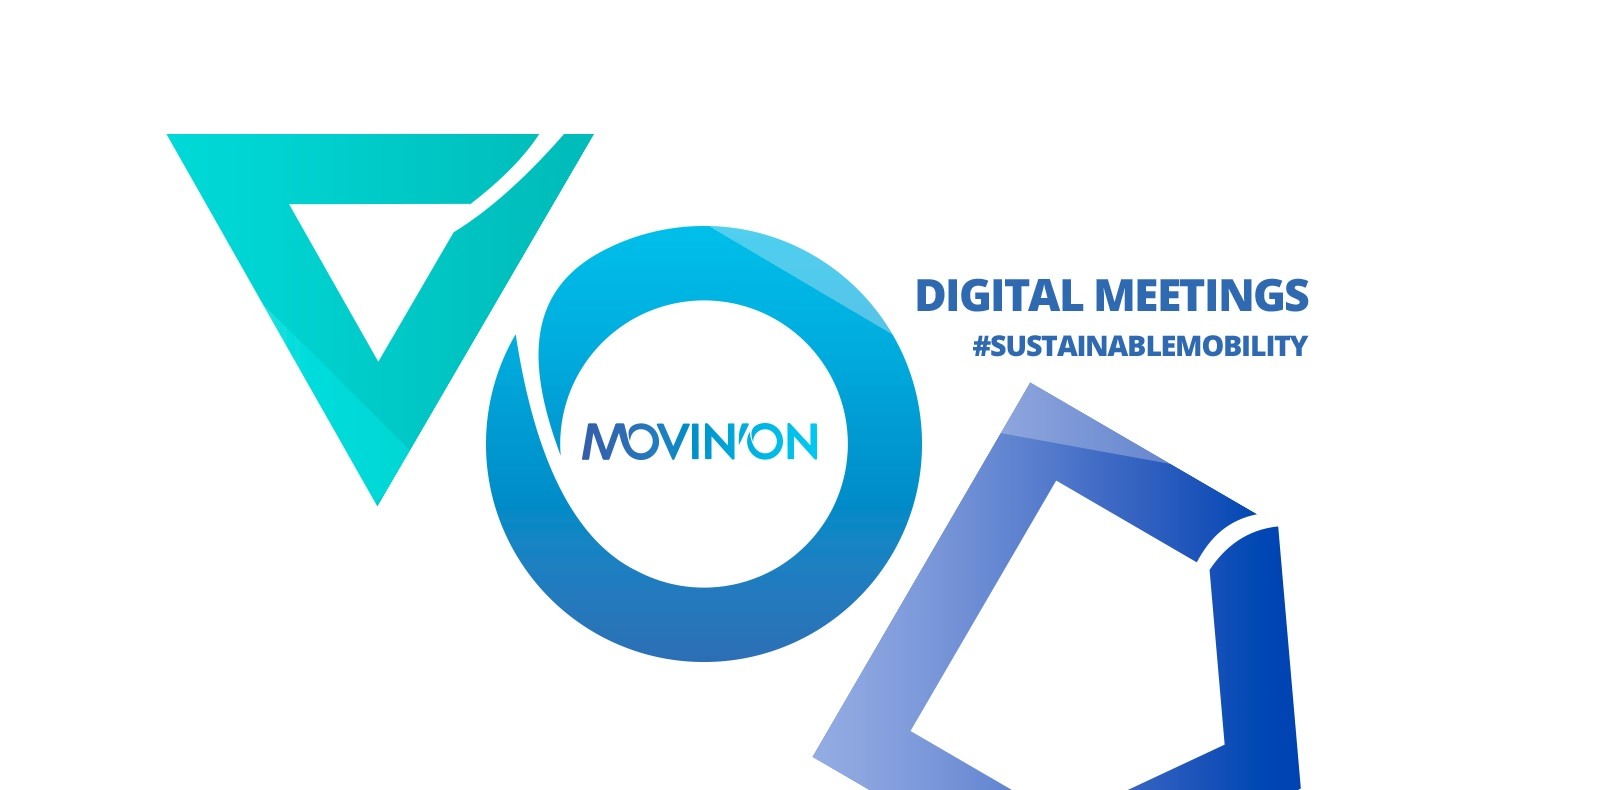 Movin'on_digital-meetings2020